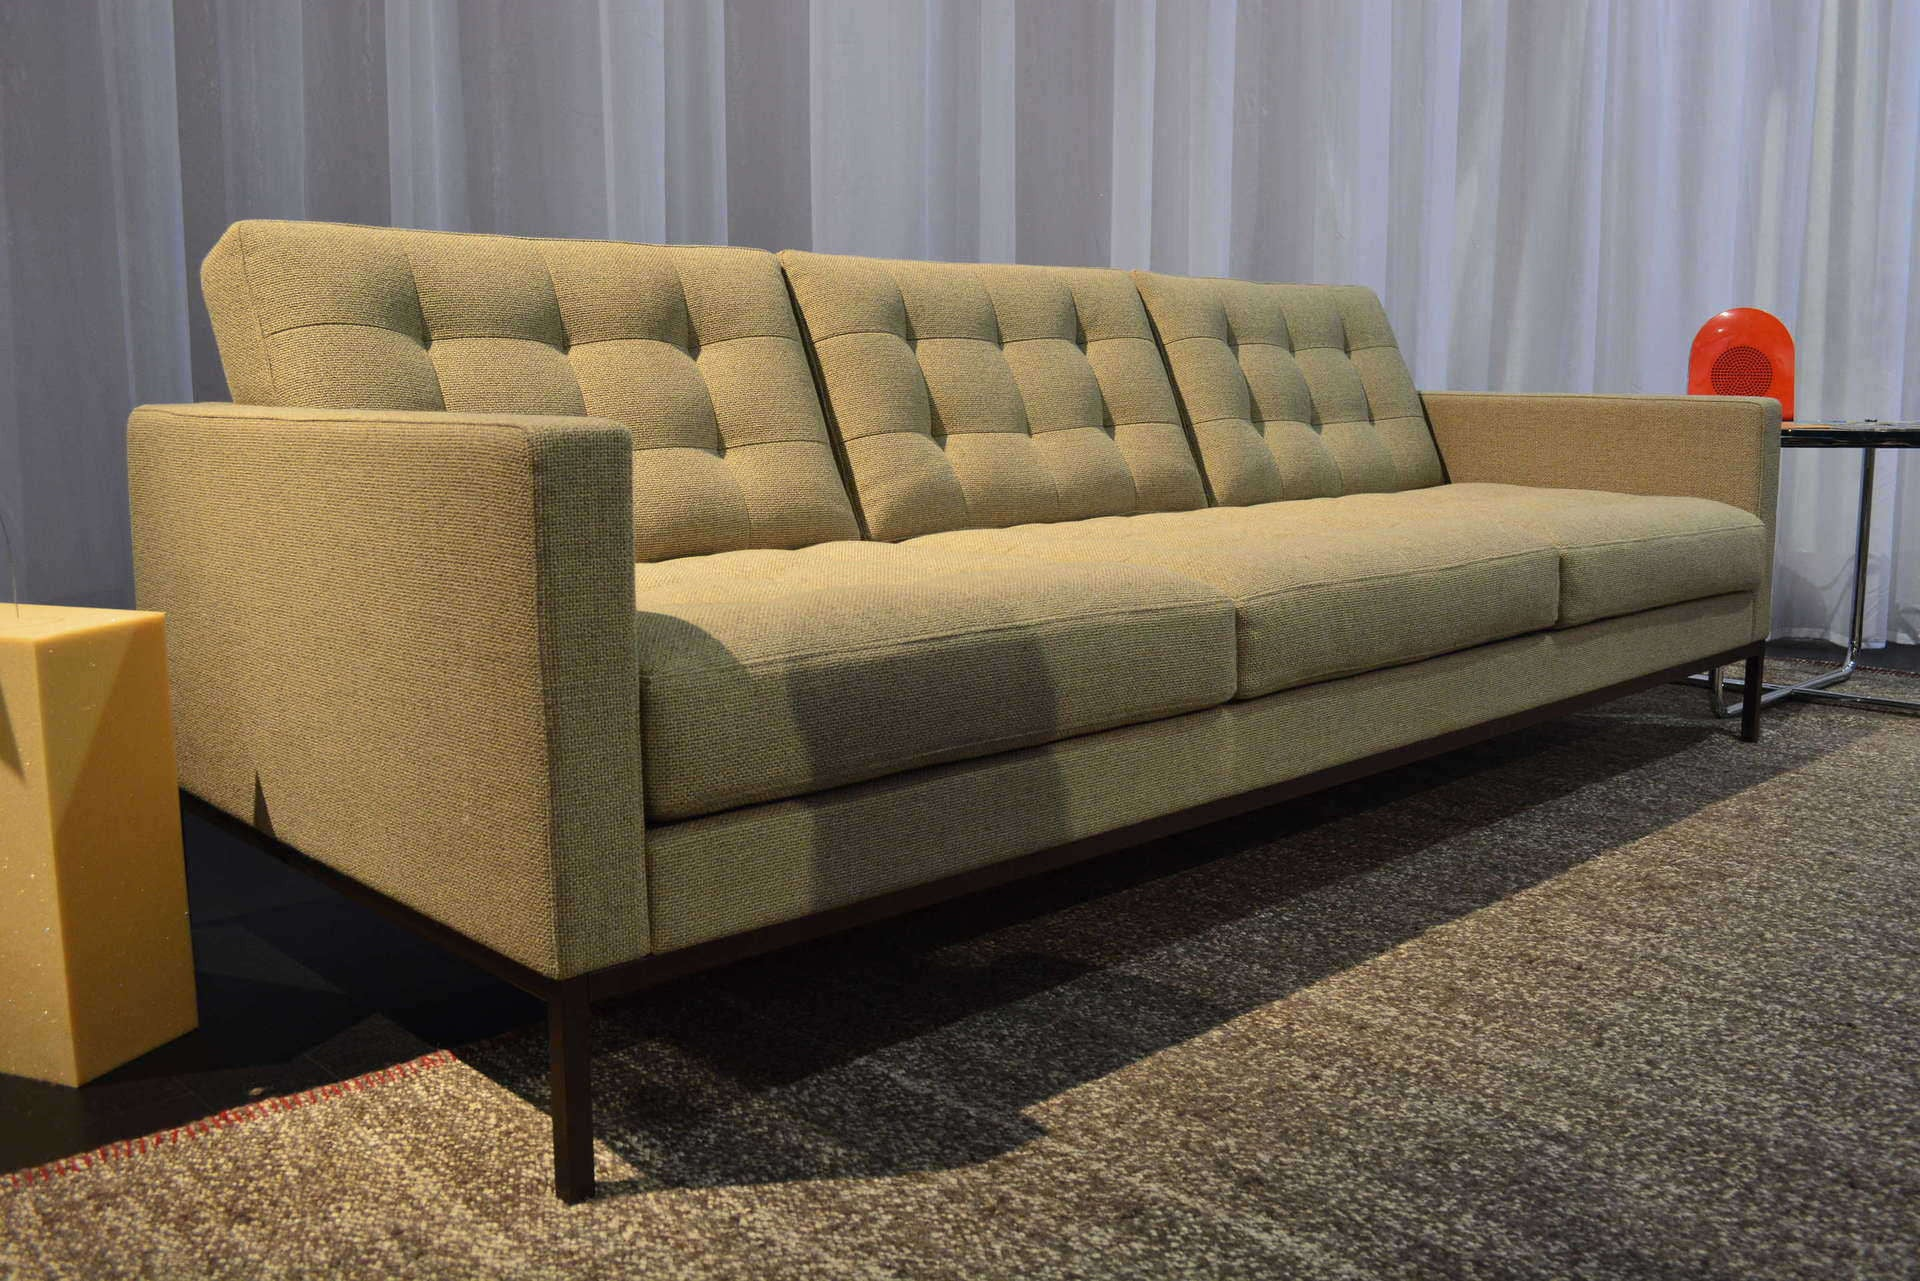 Florence knoll relax 3 seat sofa couch potato company - Florence knoll sofa gebraucht ...